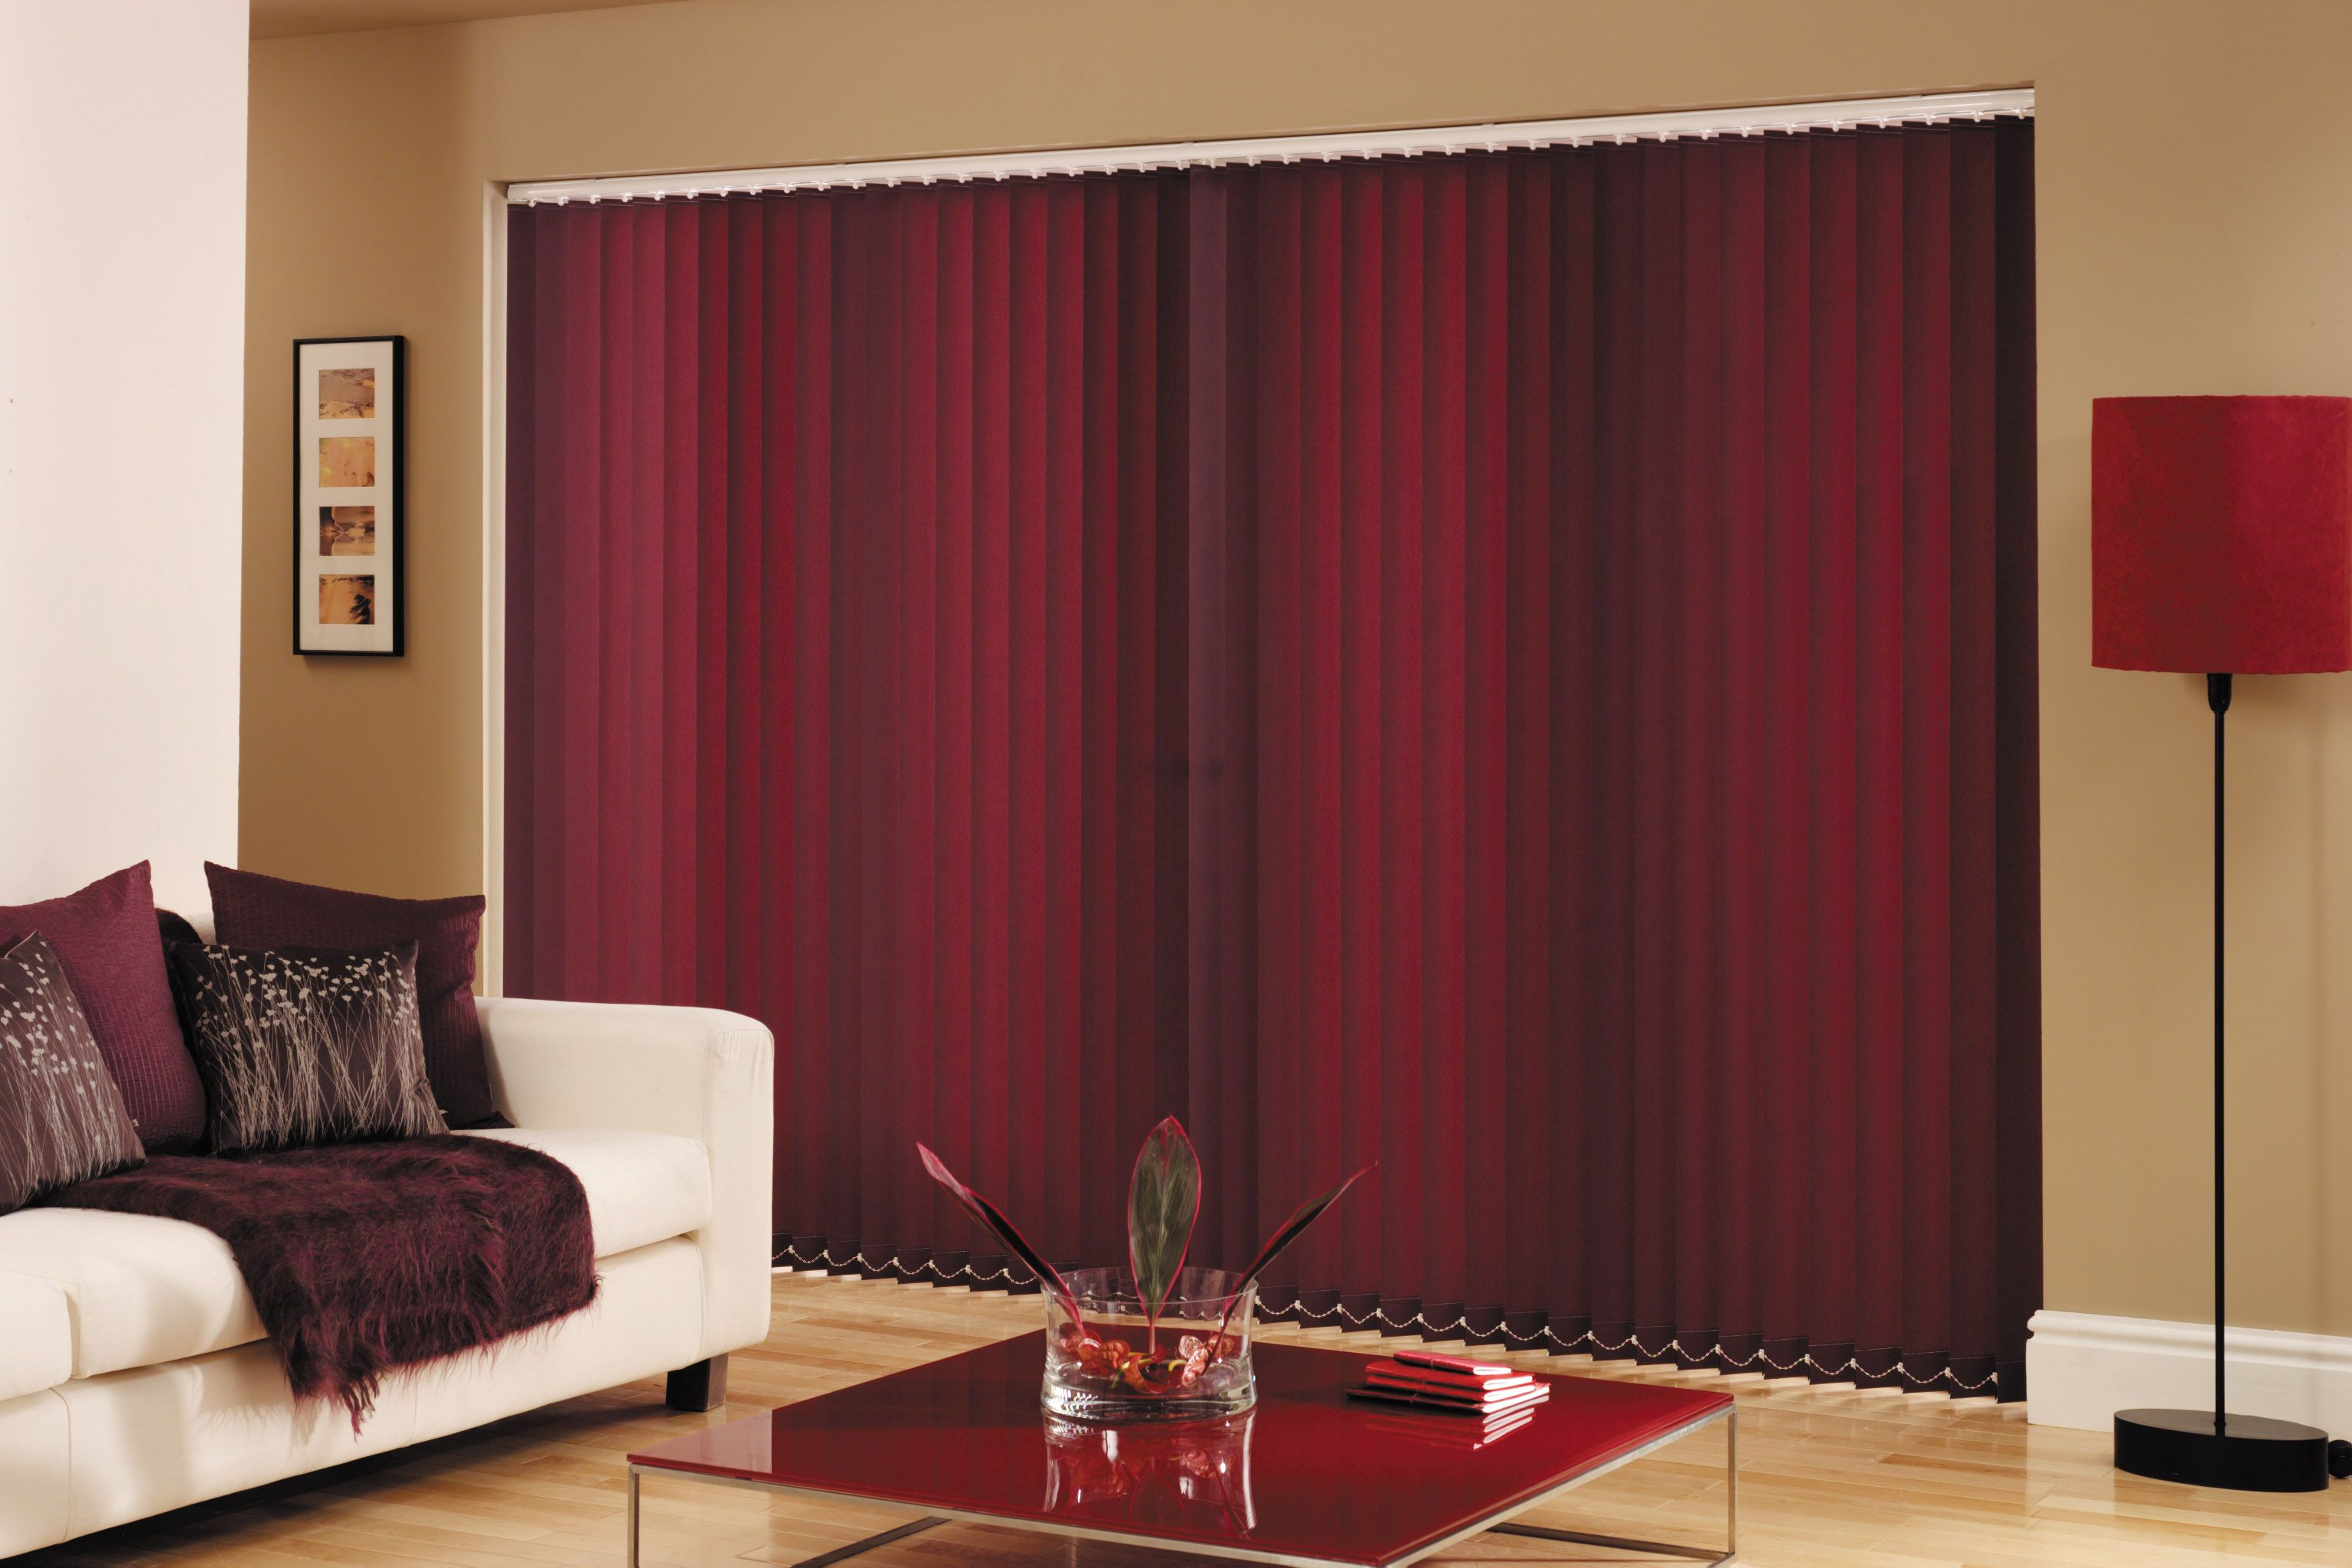 17 Best images about Vertical Blinds on Pinterest | World, Colors and  Window decorating